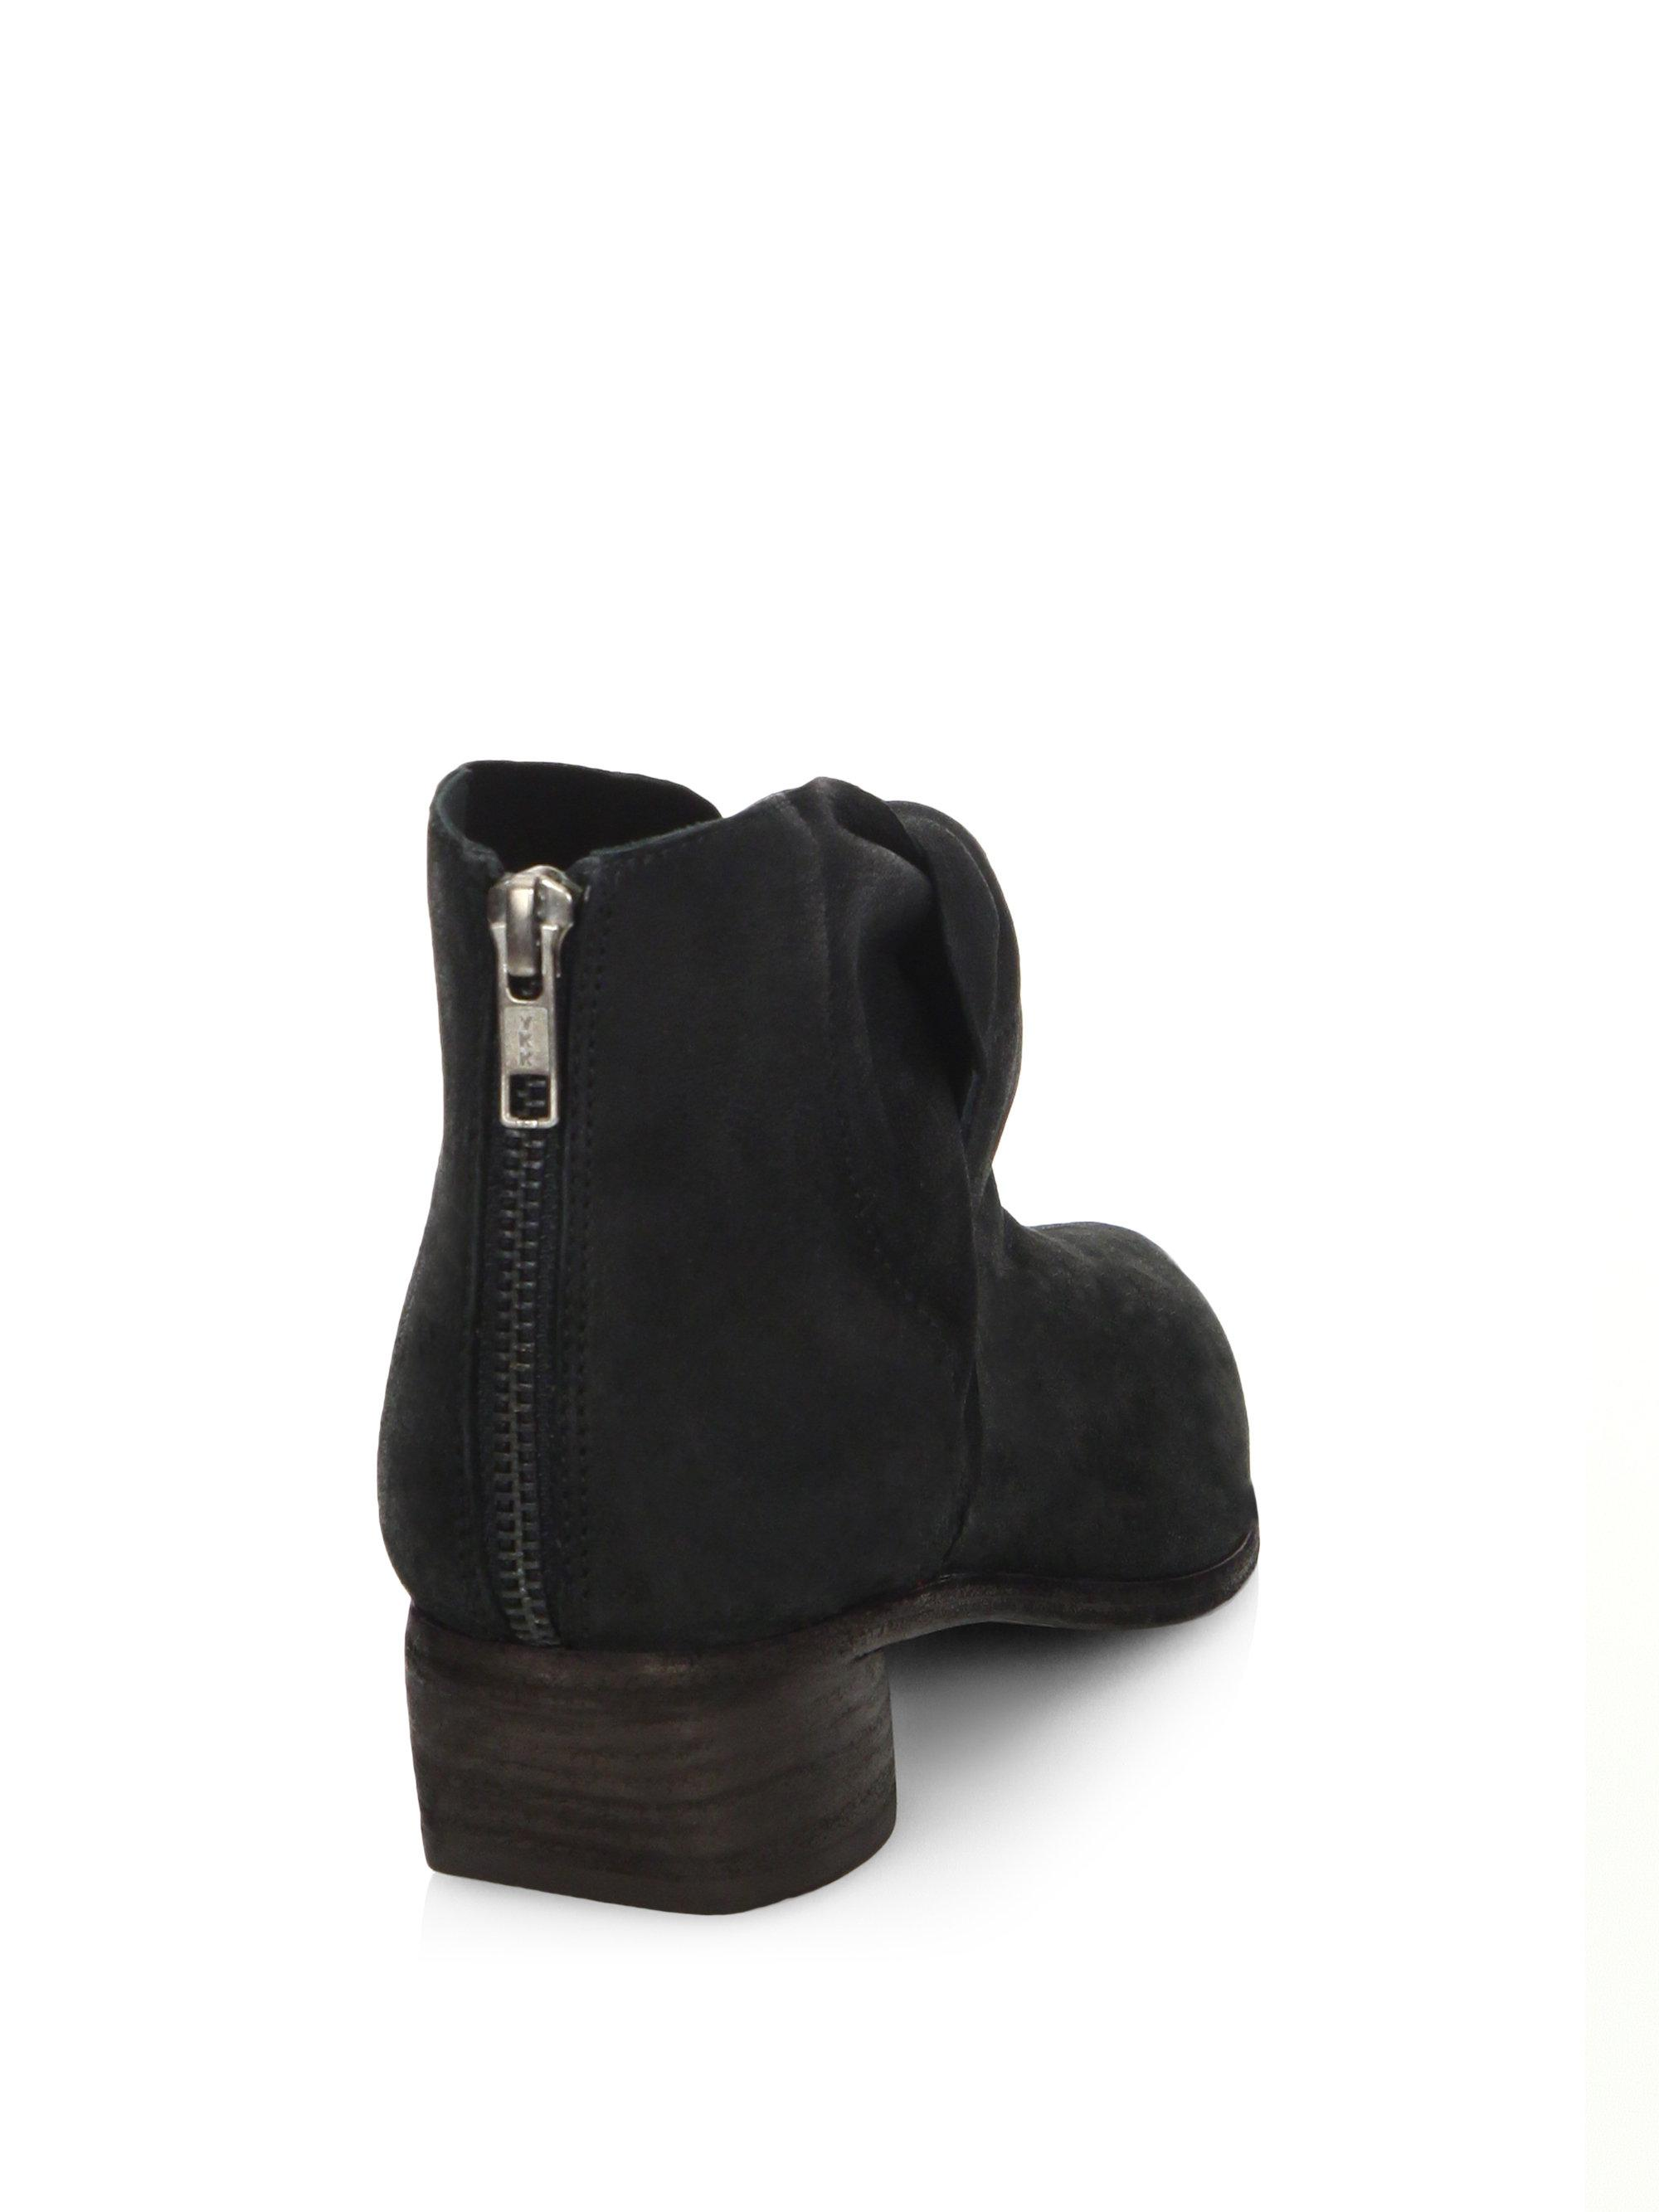 LD Tuttle The Marble Leather Booties UCbVjGkom